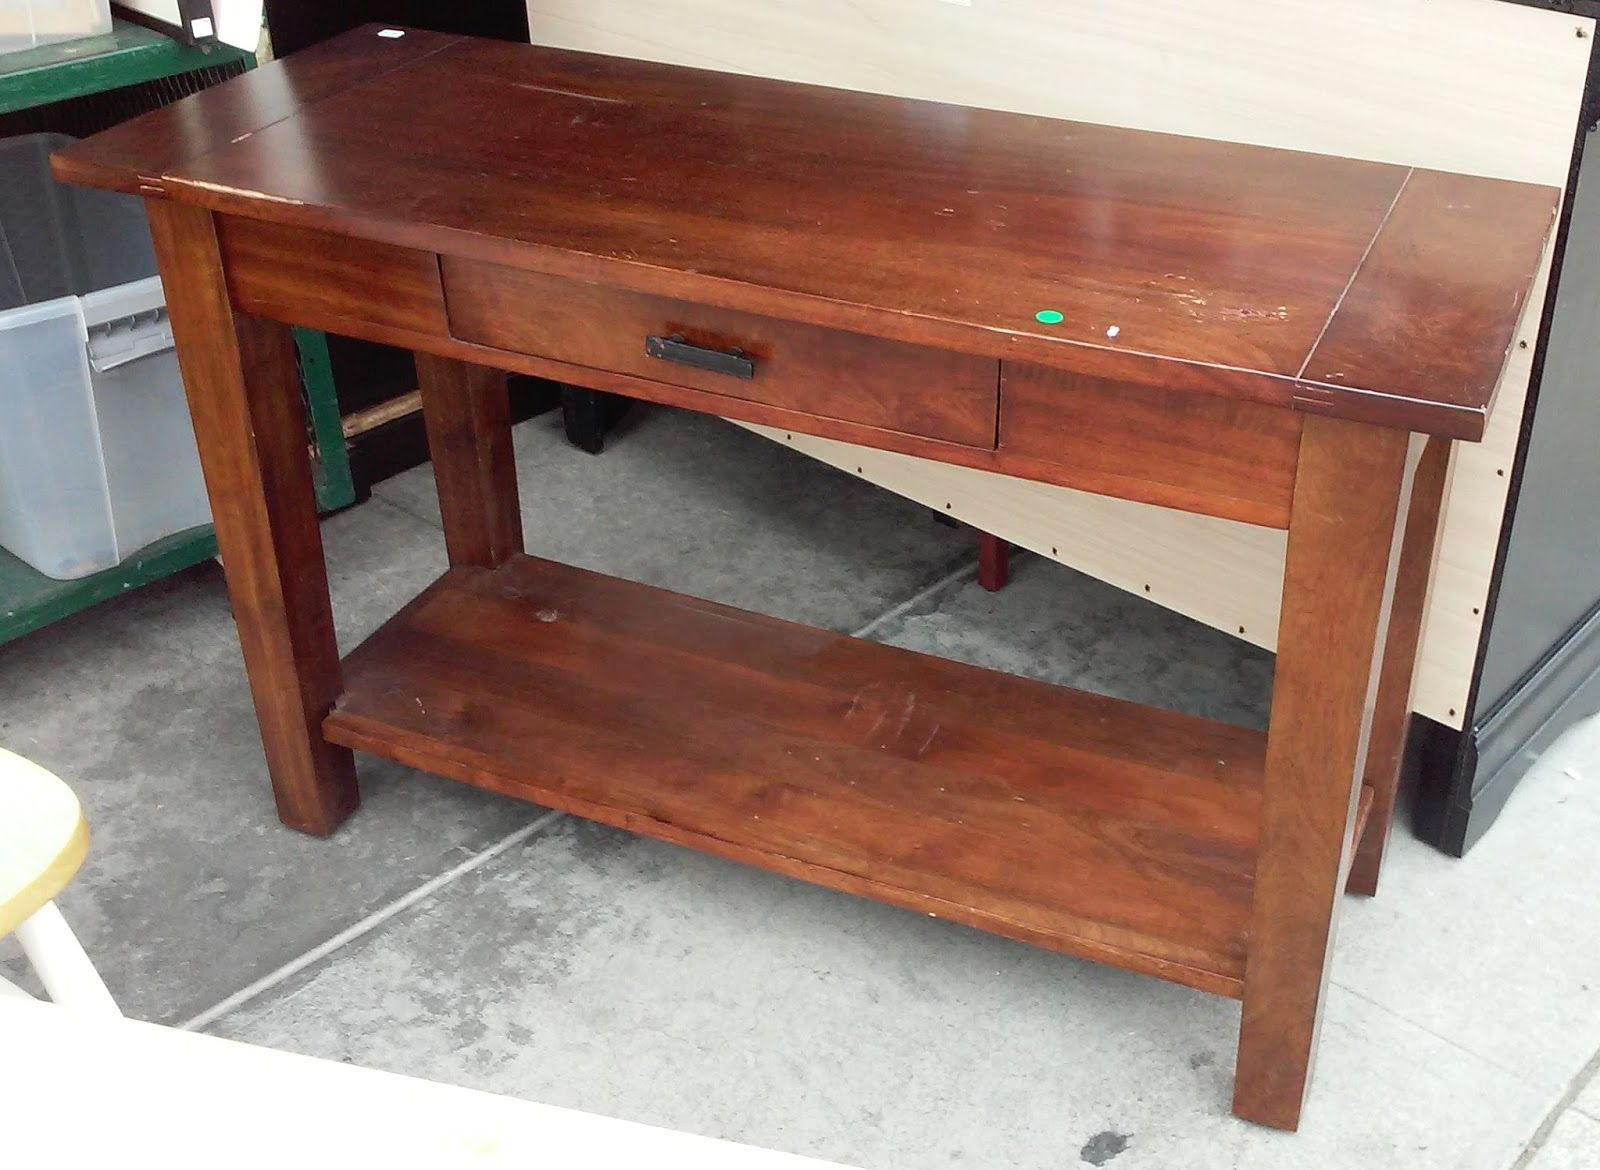 Uhuru furniture collectibles sold 3351 4 39 modern asian - Table console extensible solde ...